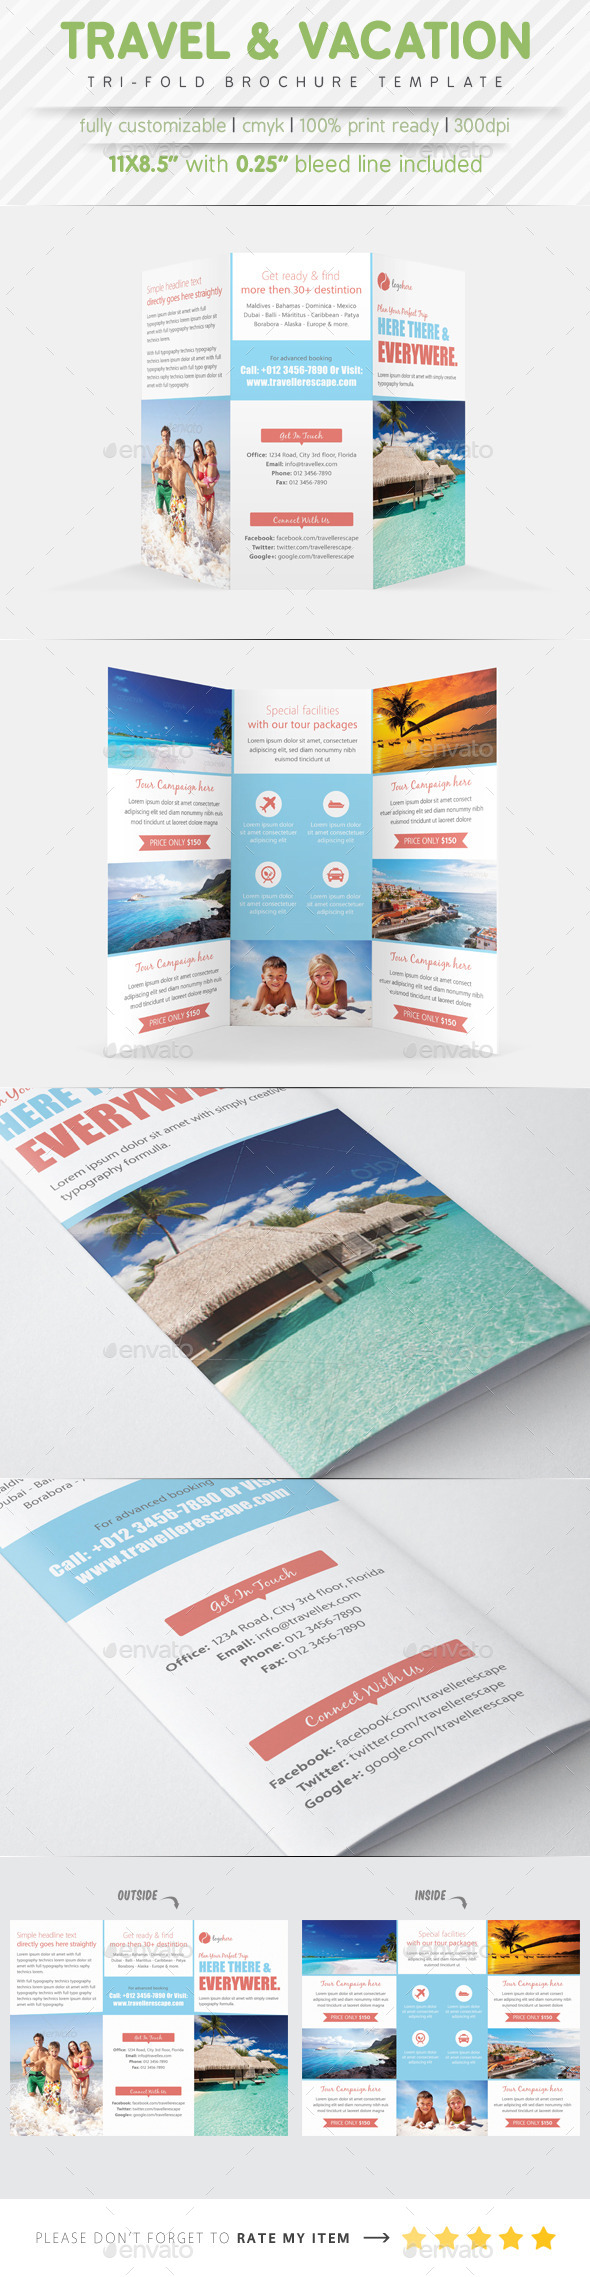 Travel Agency Tri Fold Brochure - Brochures Print Templates